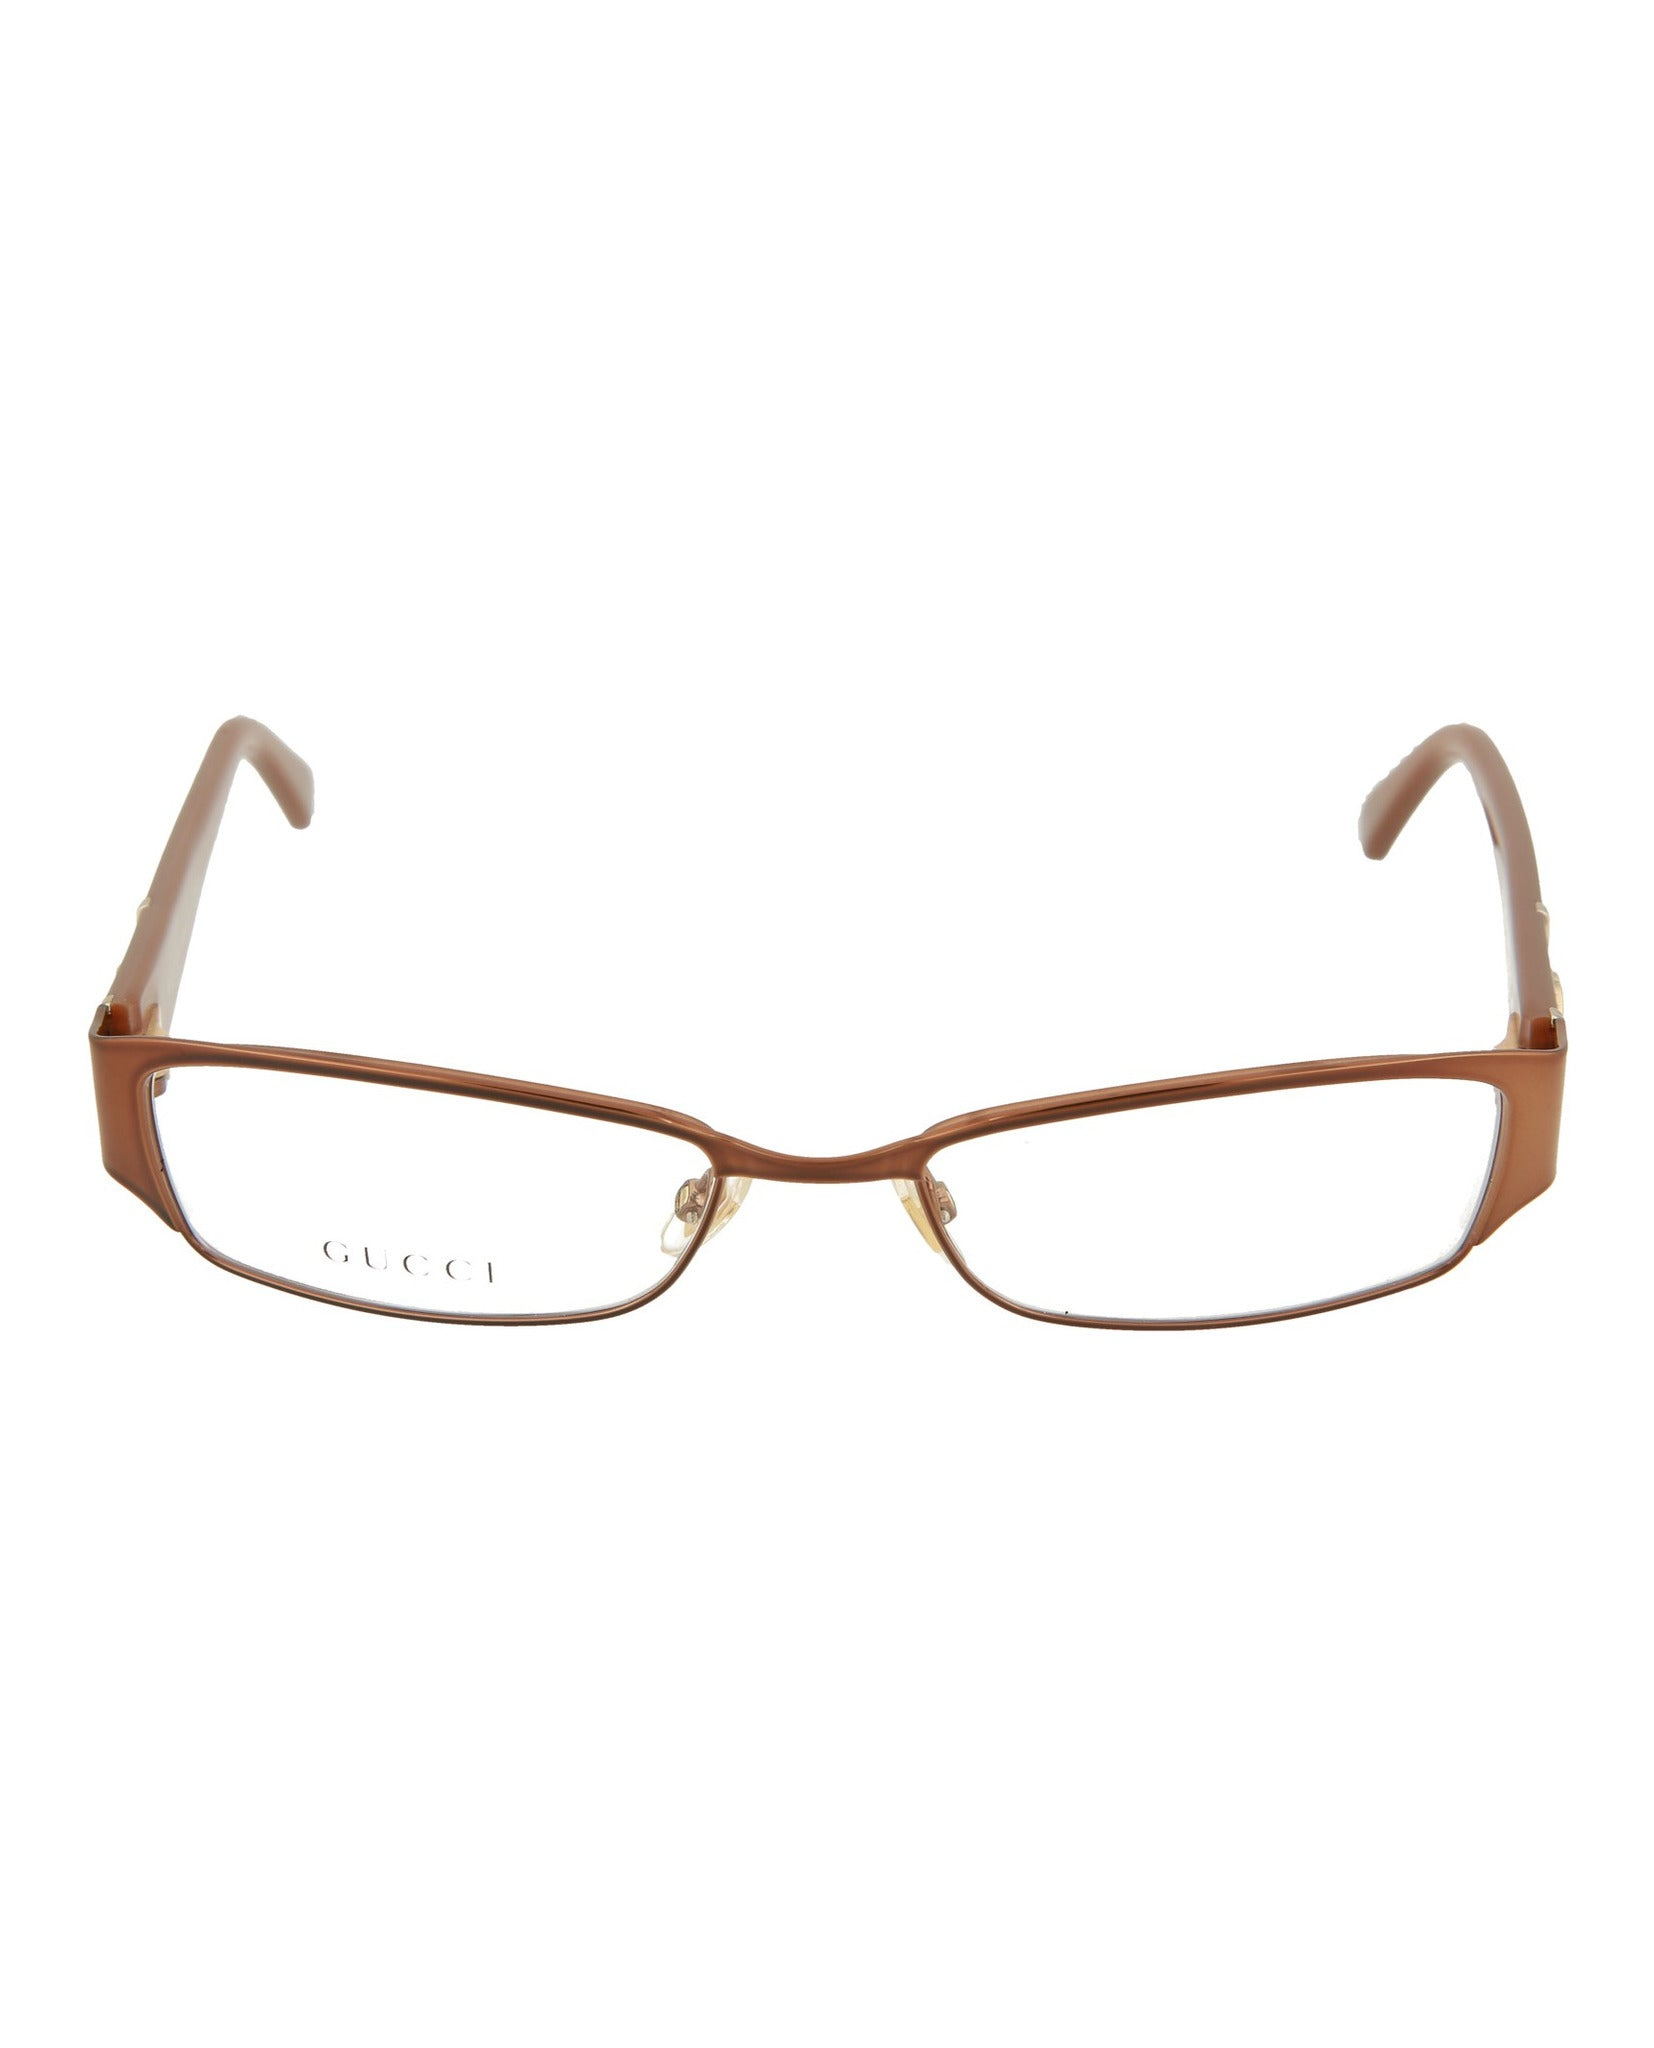 e03dae172a20 Gucci Womens Square/Rectangle Optical Frames   Madaluxe Vault ...